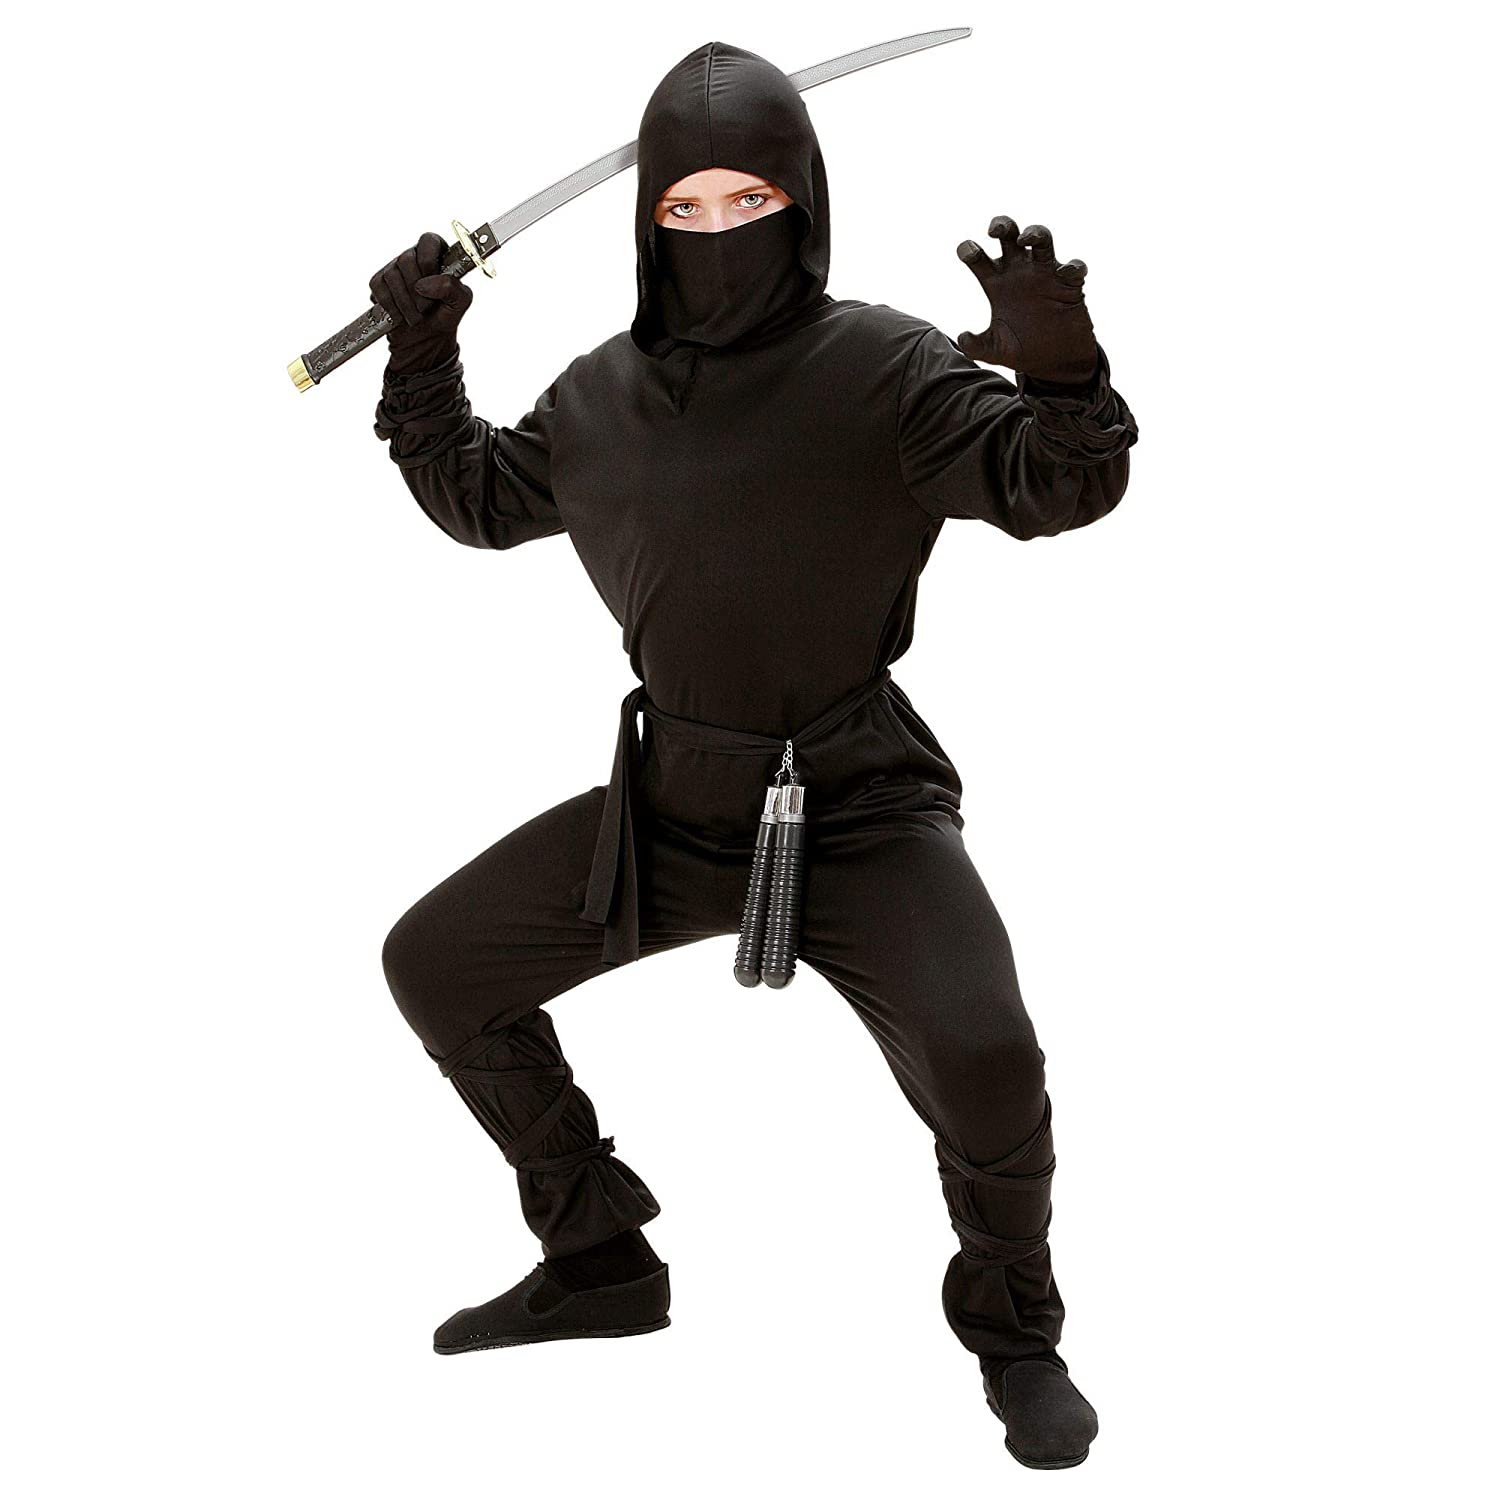 Amazon.com: Childrens Ninja Costume Small 5-7 Yrs (128cm ...